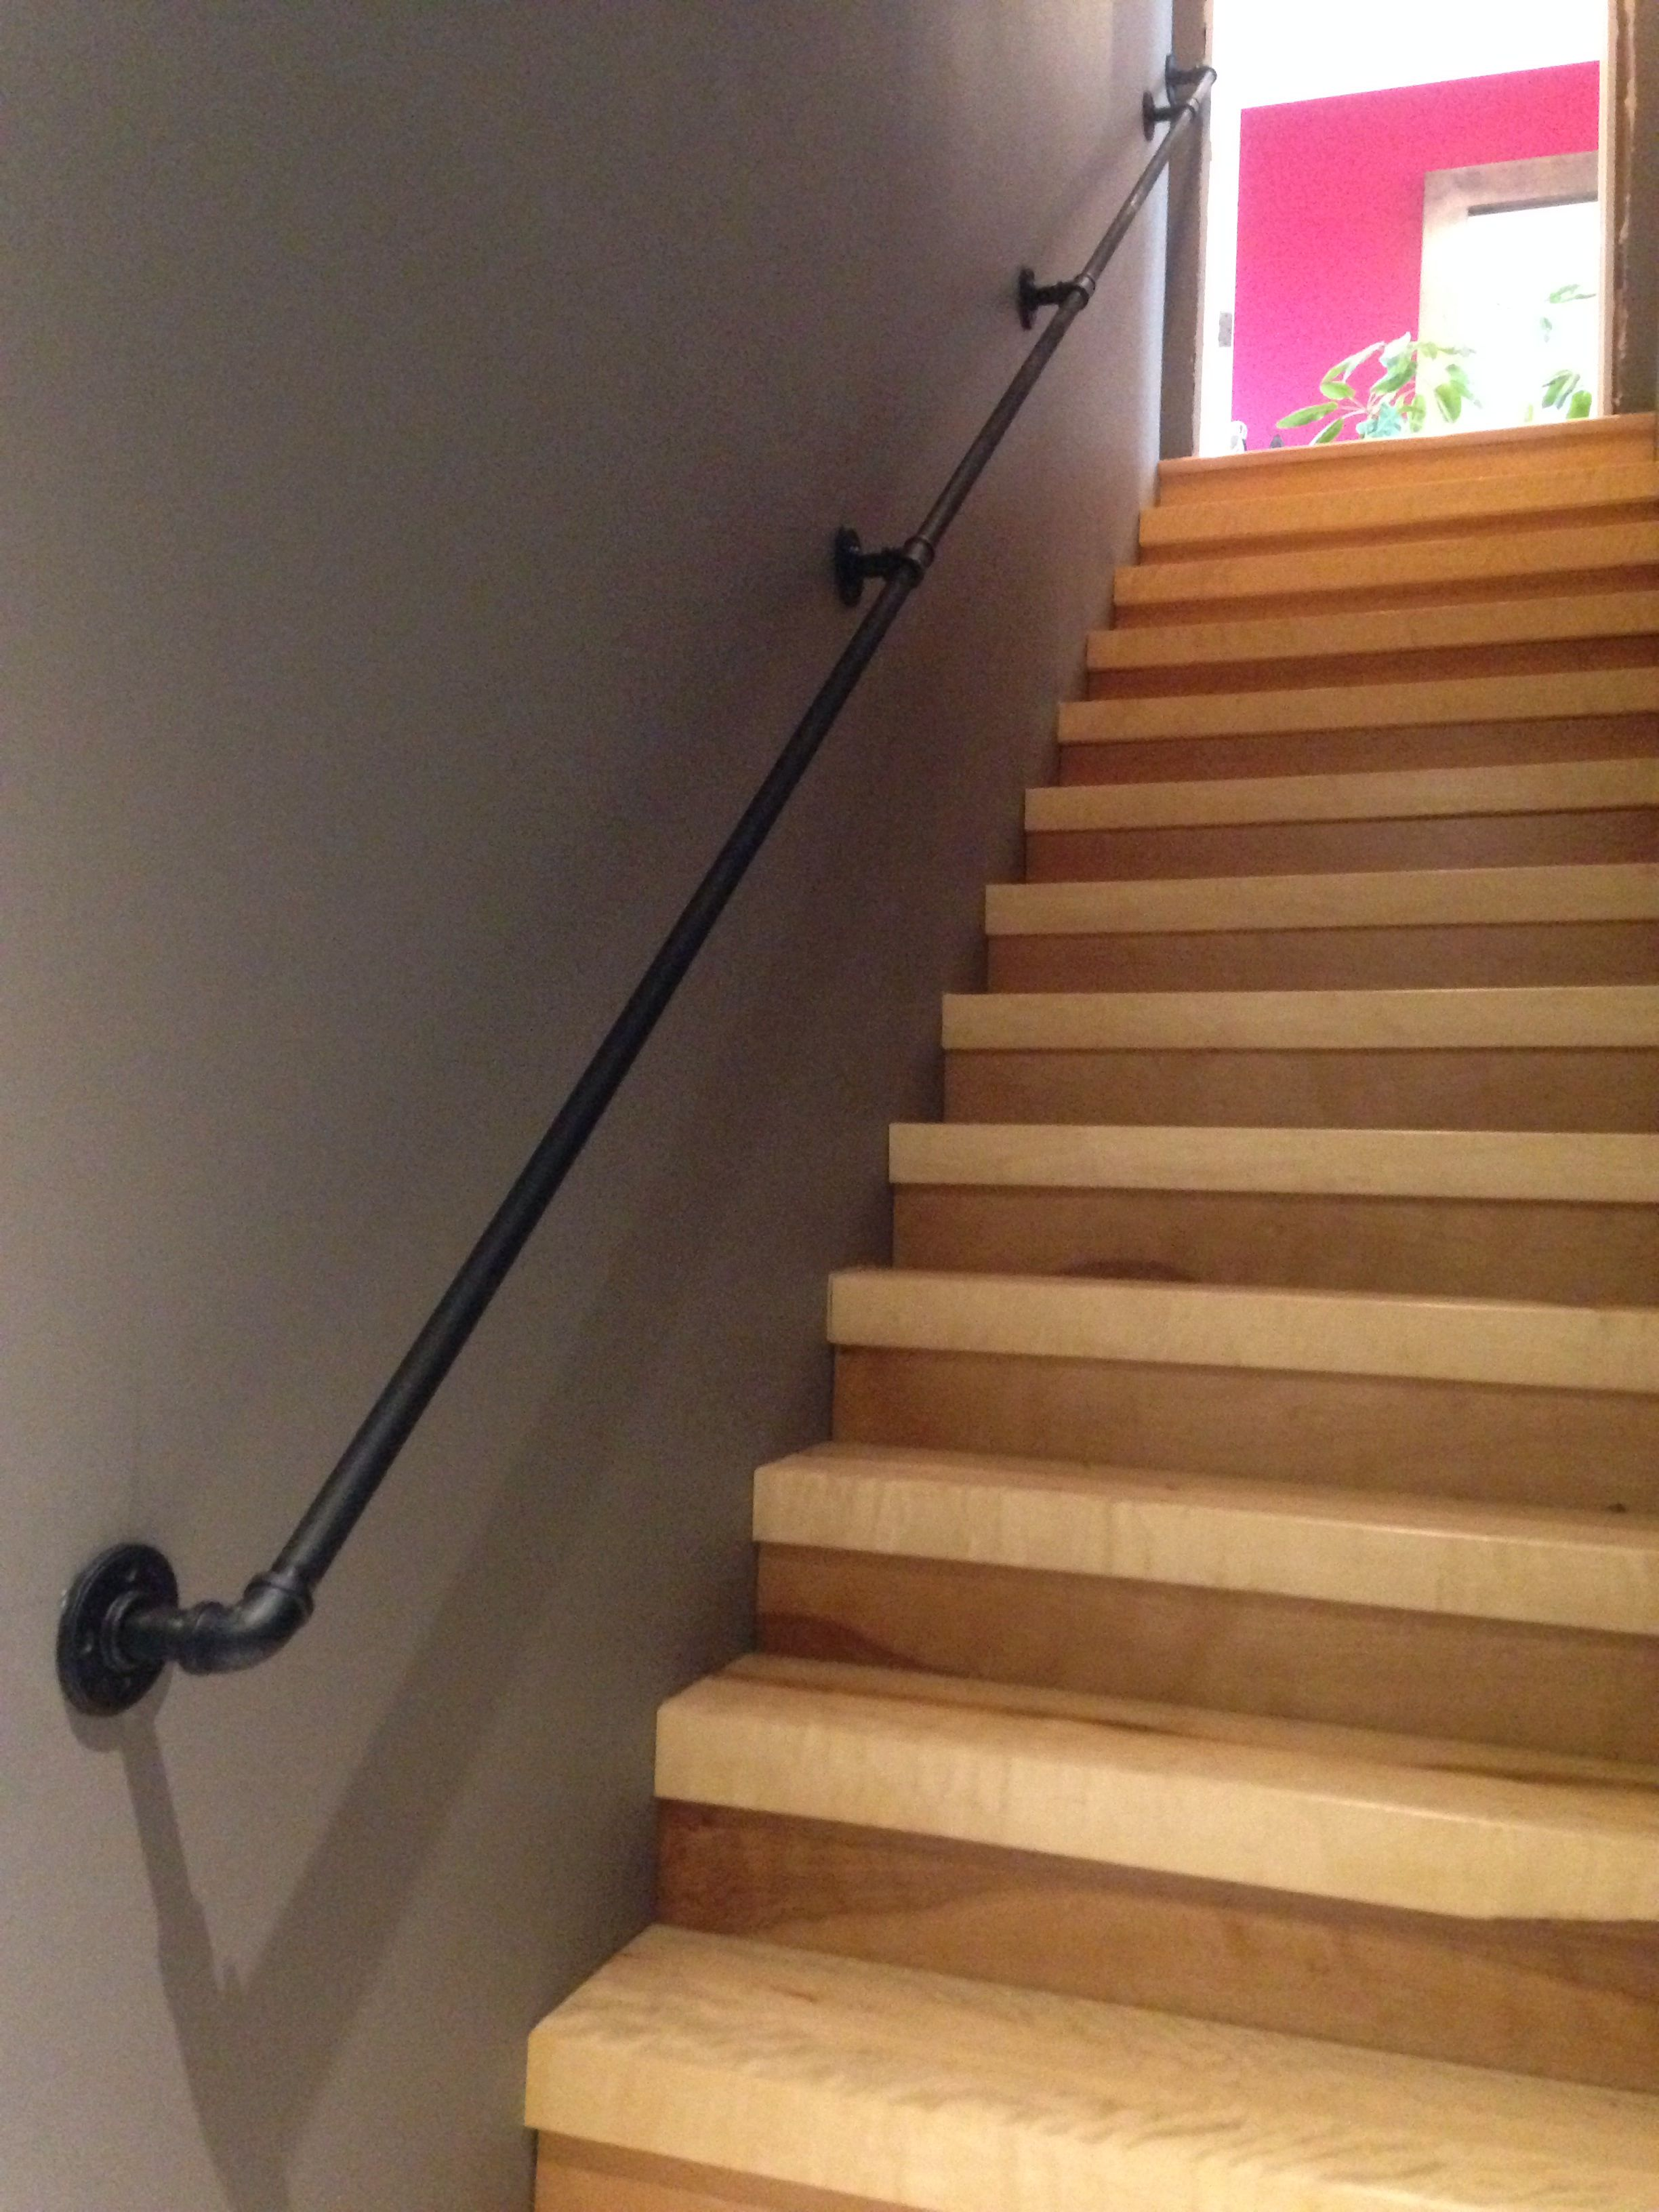 Pin On Home Renovation | Home Depot Hand Railing Interior | Stair Treads | Staircase | Box Newel Post | Railing Systems | Iron Railings